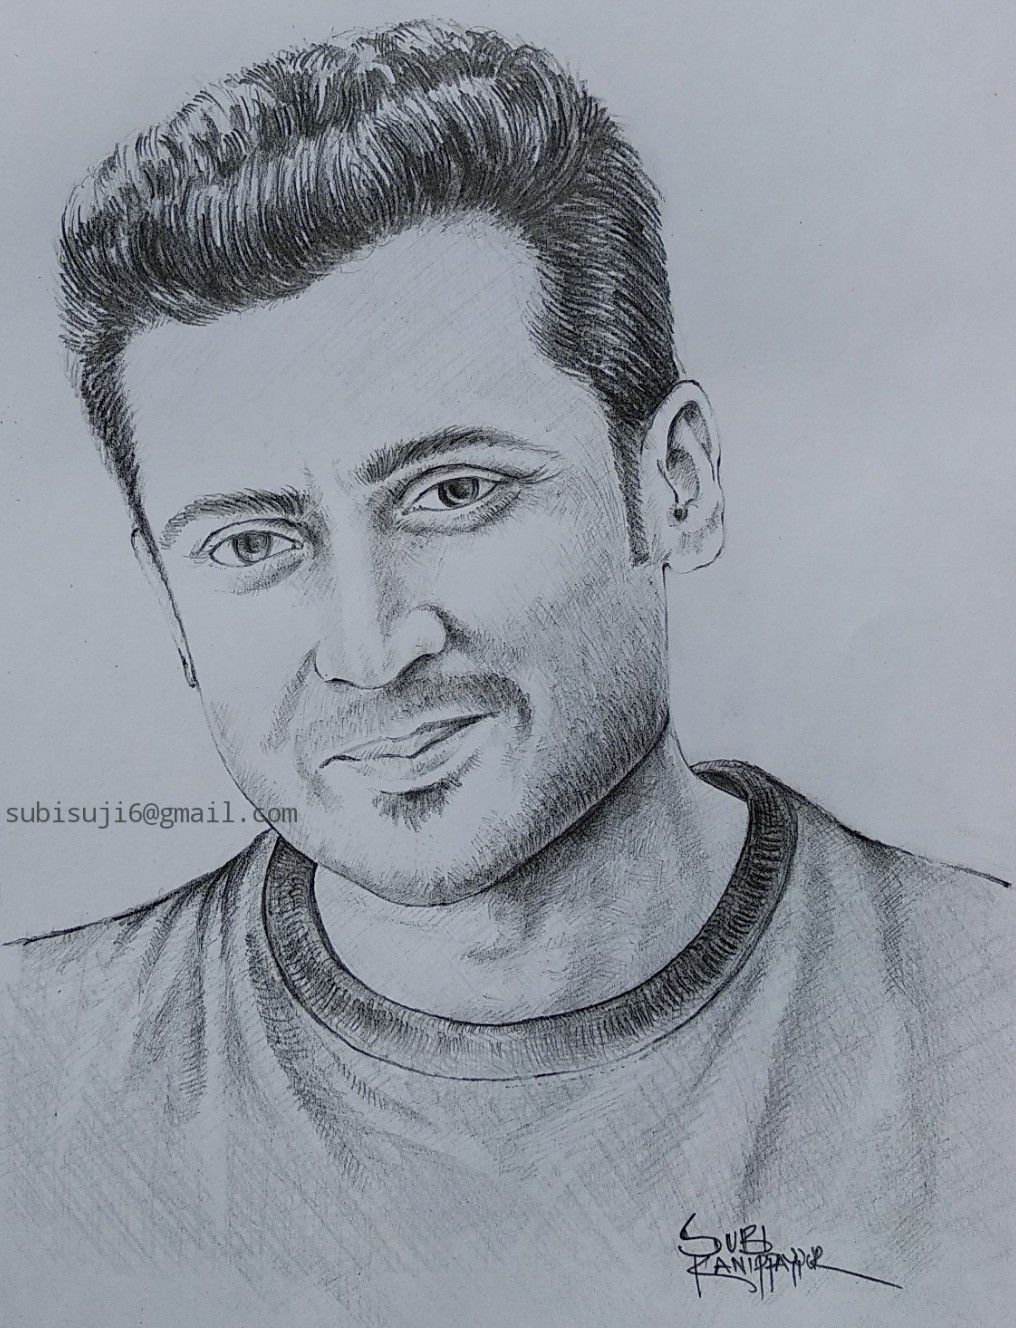 Surya tamil actor drawing s figure drawing hanuman pencil drawings sketching